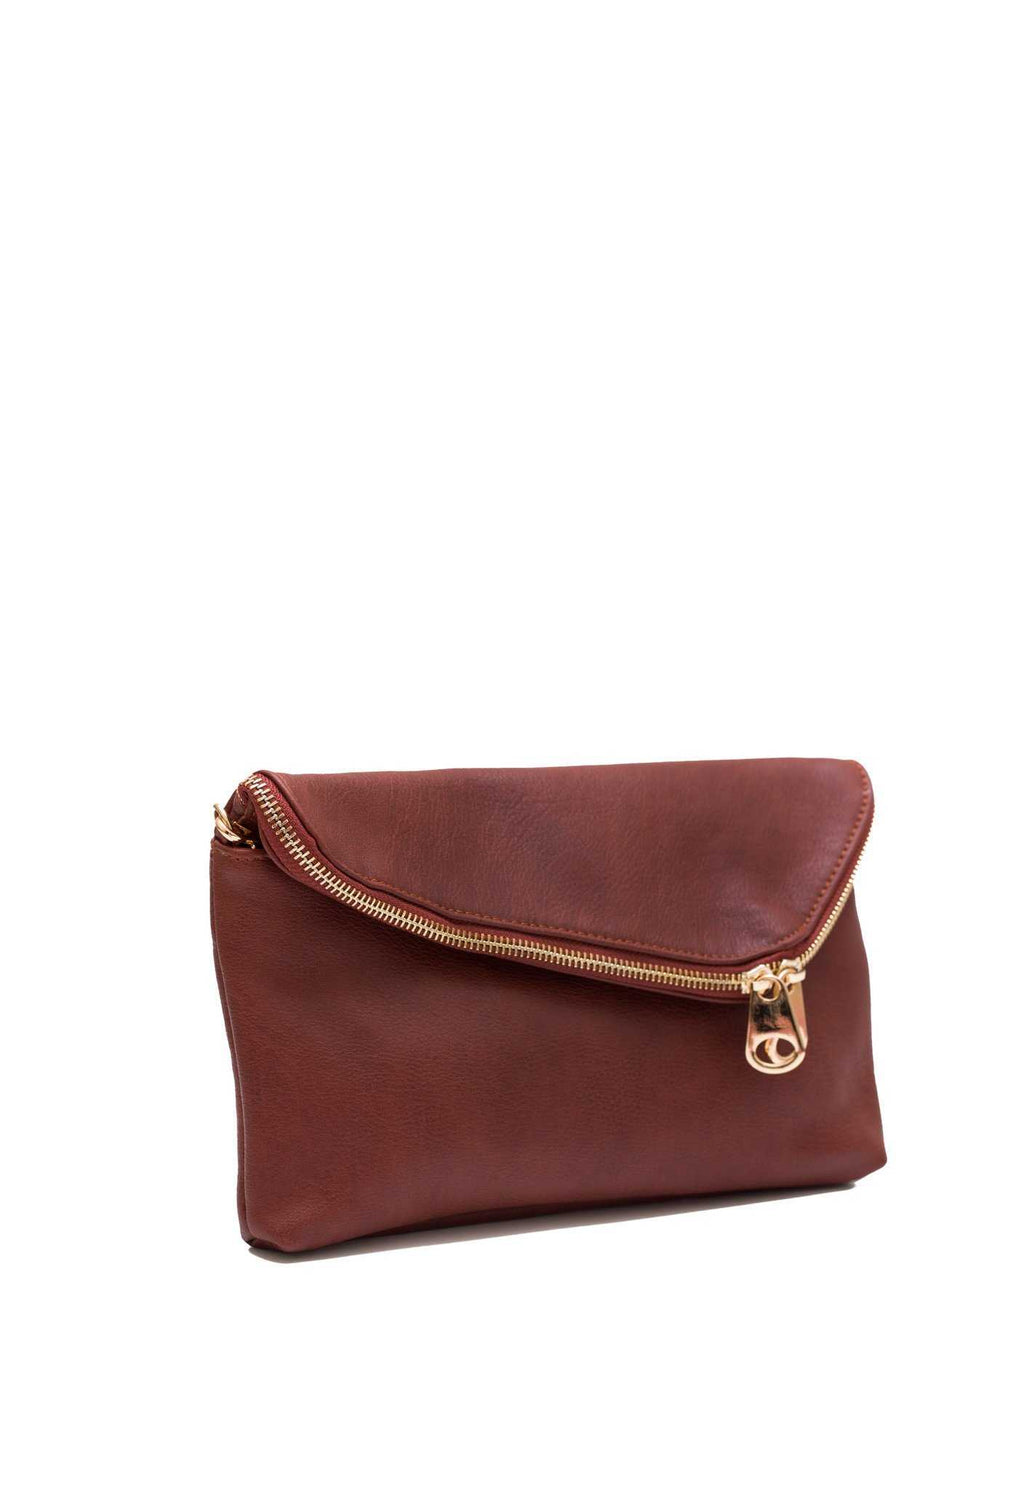 Accessories - Diana Pleather Clutch - Brown